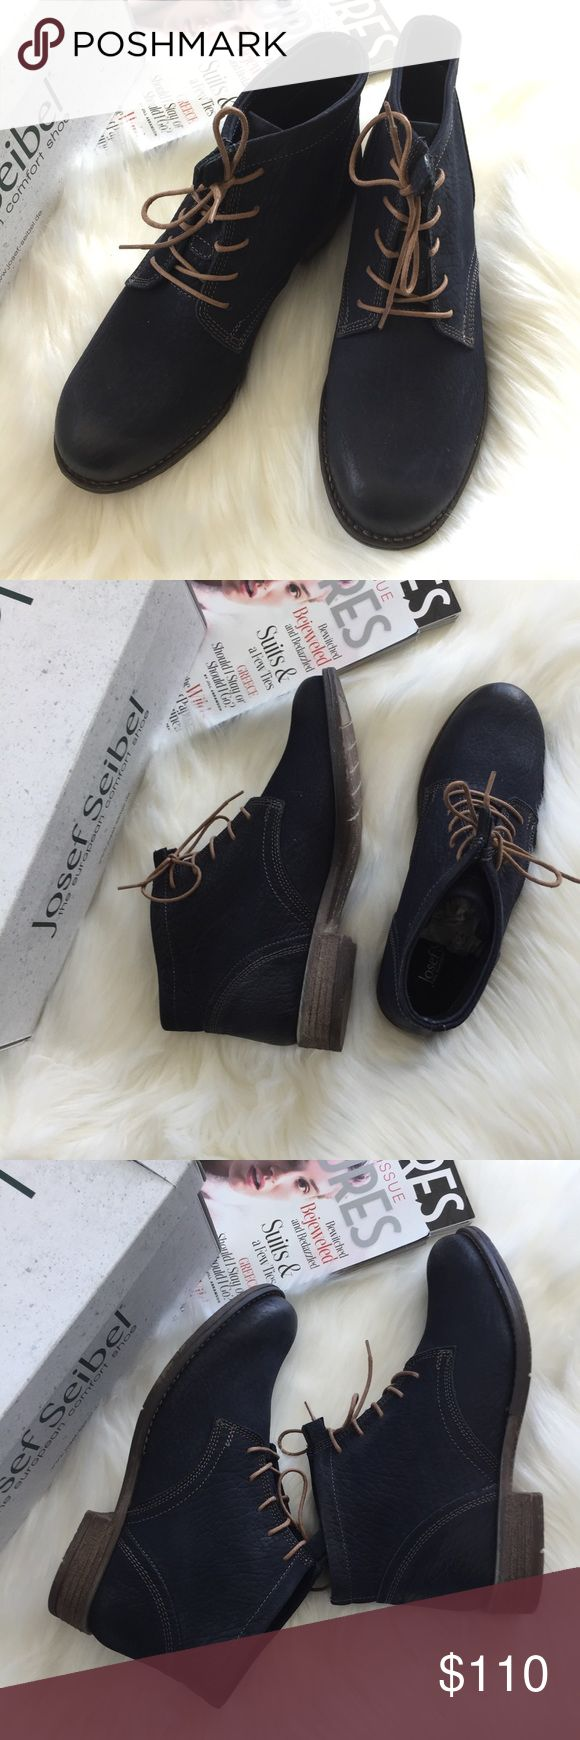 """JOSEF SEIBEL Sienna 03' Bootie 🌷Please Read the description! Thanks!🌷  Brand new with original shoe box Retail: $160 Size: 38 (Euro) Color: Hippo ocean  4"""" boot shaft Lace-up style Removable insole Color may be slightly different bcz of lighting  🌈💯AUTHENTIC 🌈All sales are final 🚭Smoke & Pet free home 🙅NO TRADES  🙅NO HOLDS Josef Seibel Shoes"""